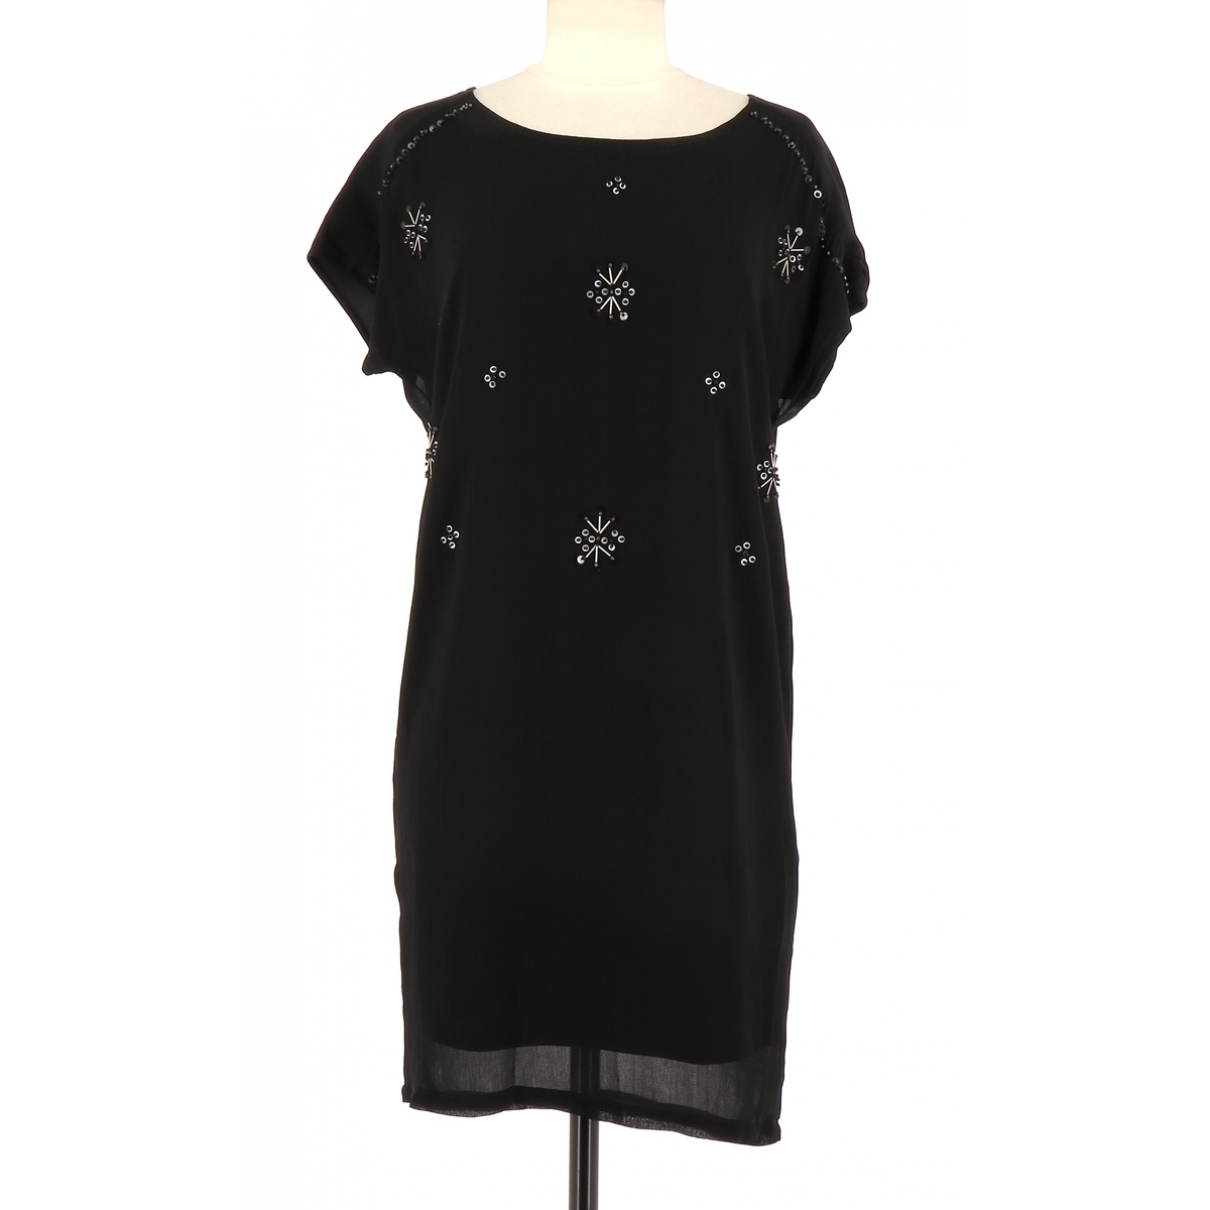 Ikks \N Black dress for Women 34 FR